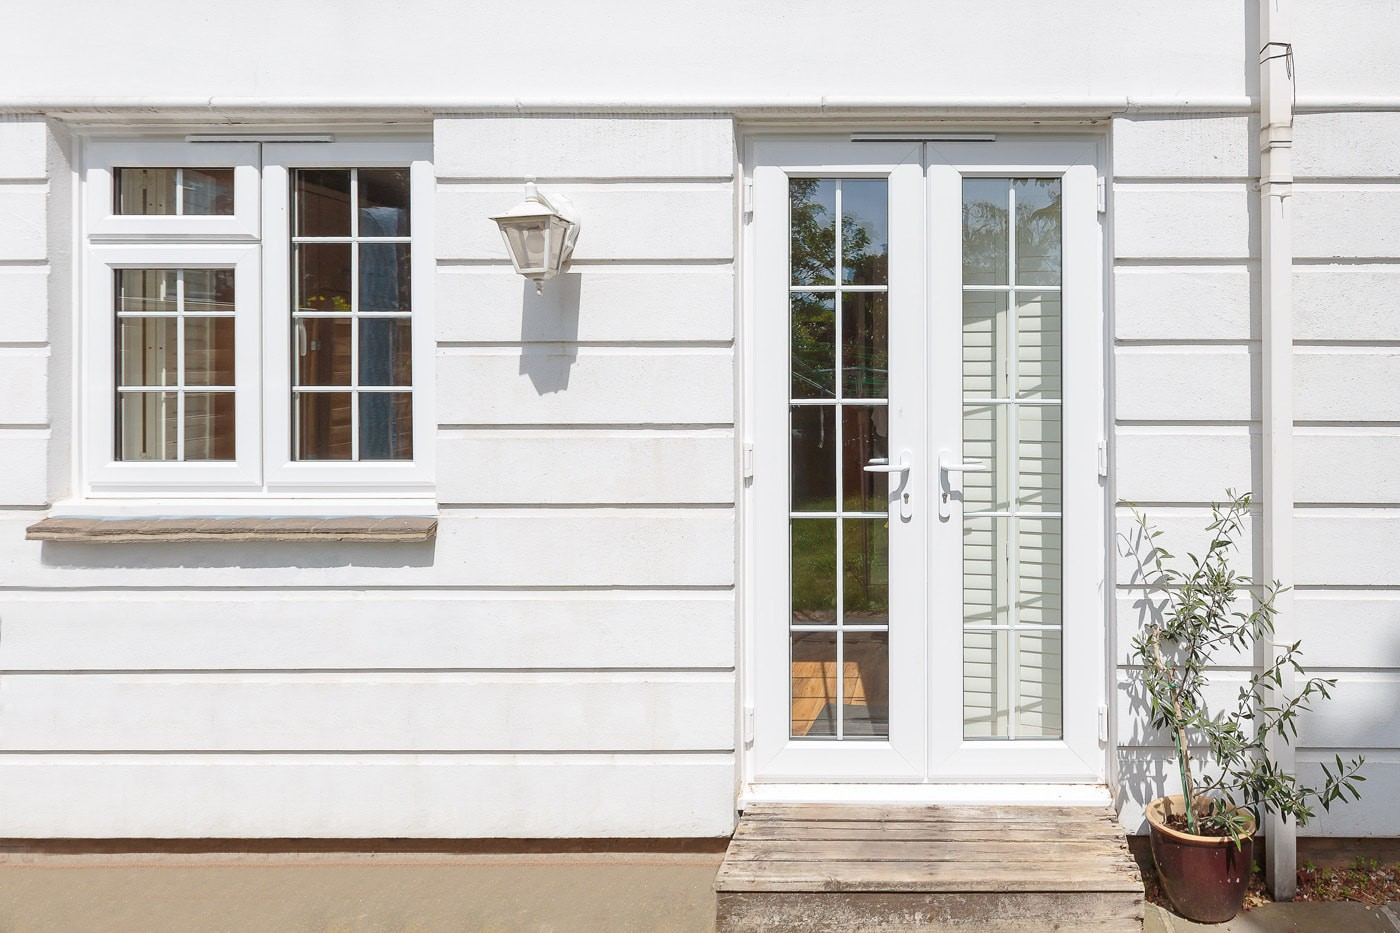 Replacemnet windows and doors in Kingston town house from Hamiltons